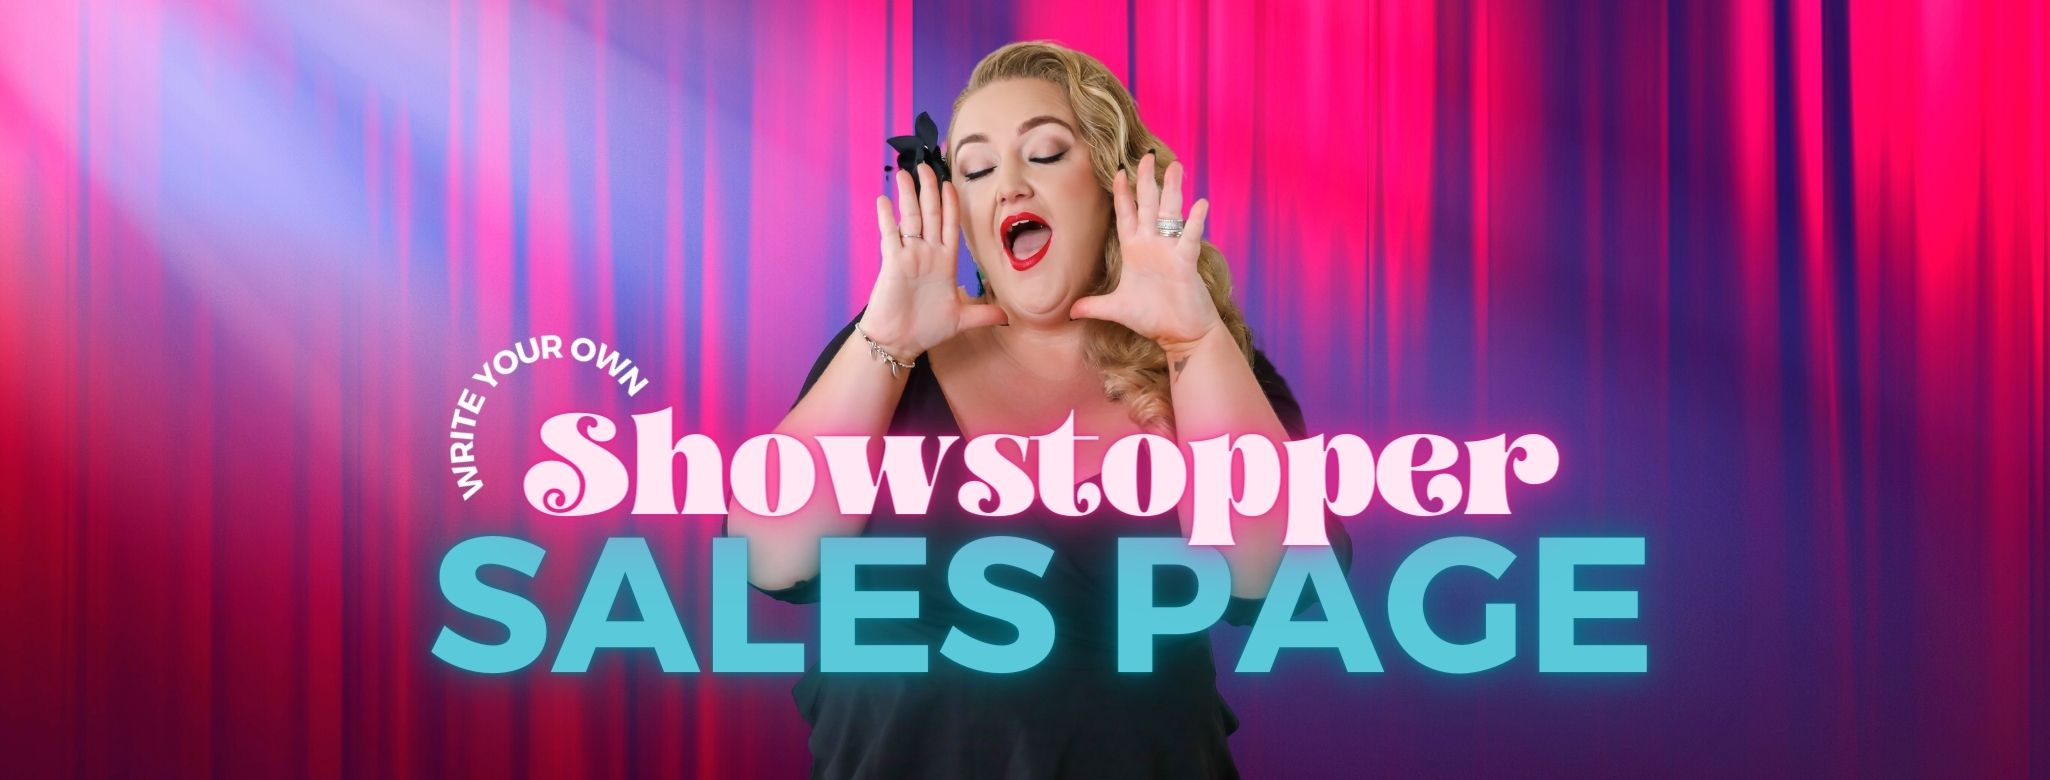 Sales Page Copywriting Course Crisp Copy Showstopper